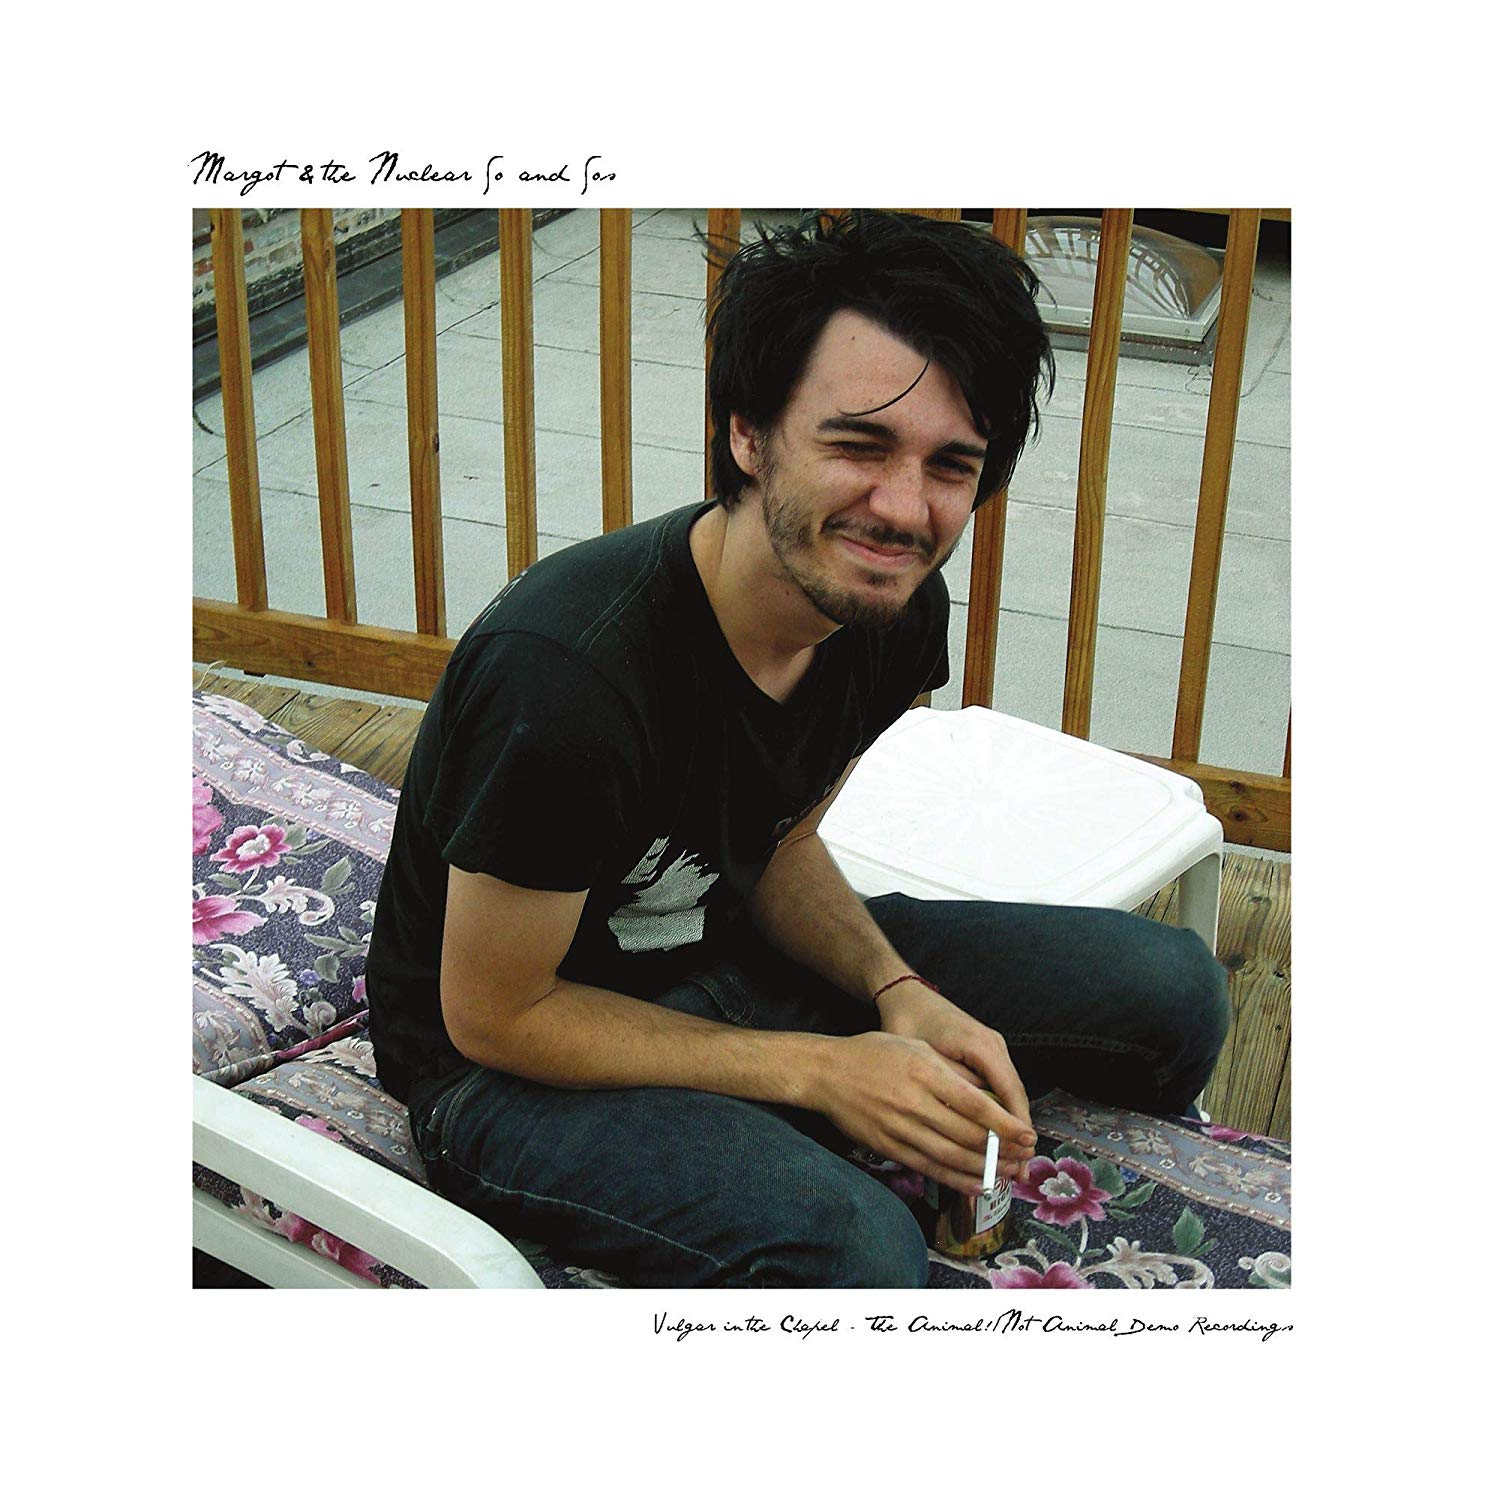 Margot & The Nuclear So And So's - Vulgar In The Chapel - The Animal!/not Animal Demo Recordings